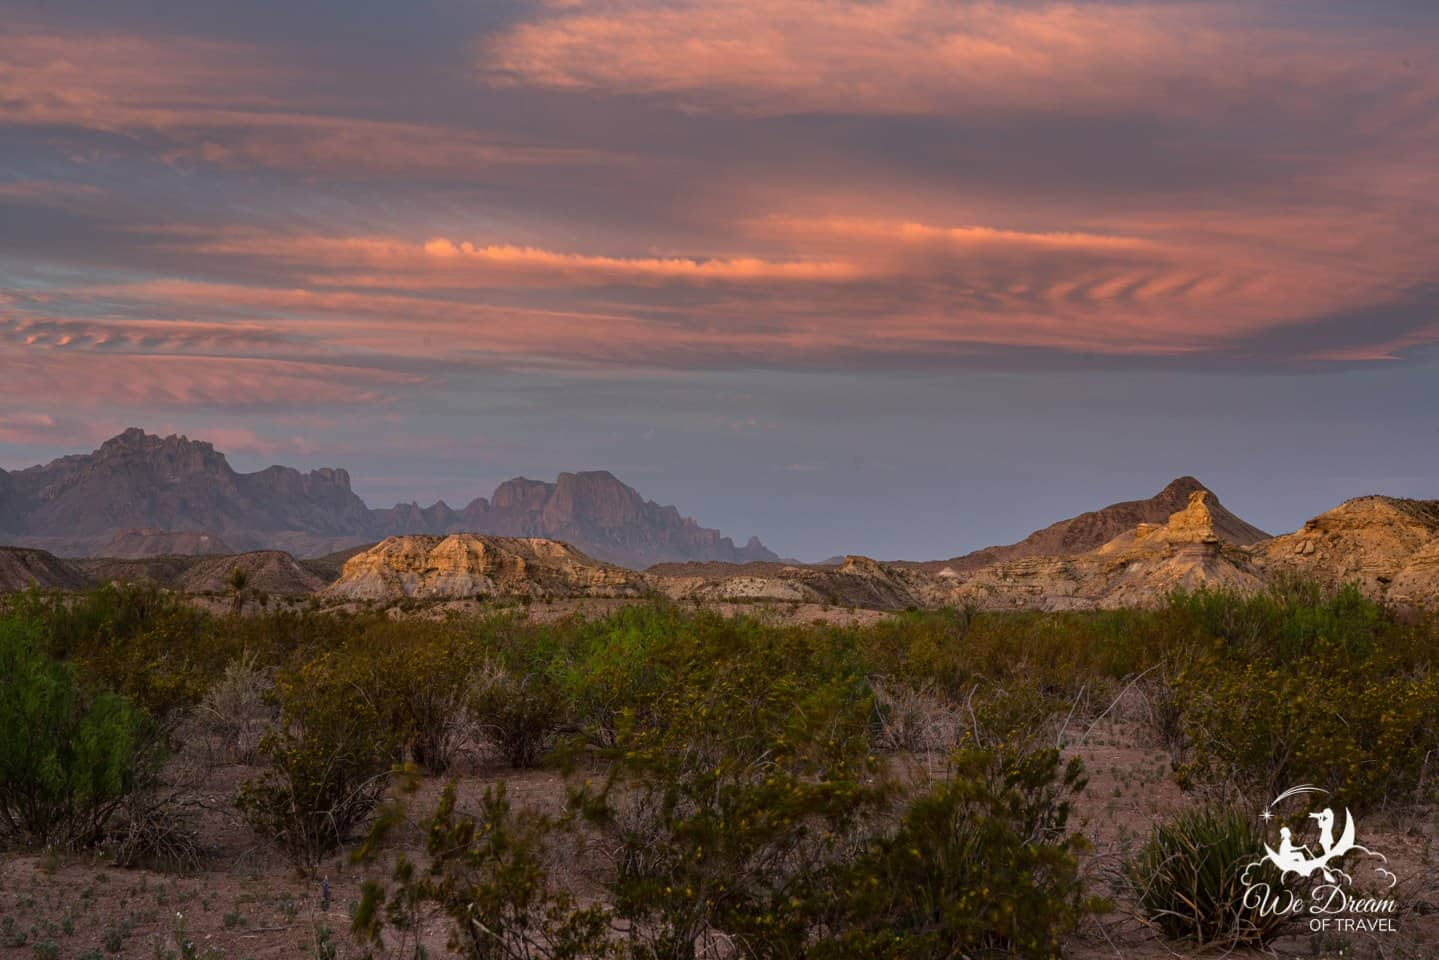 Sunrise pictures of Big Bend National Park from Exhibit Ridge.